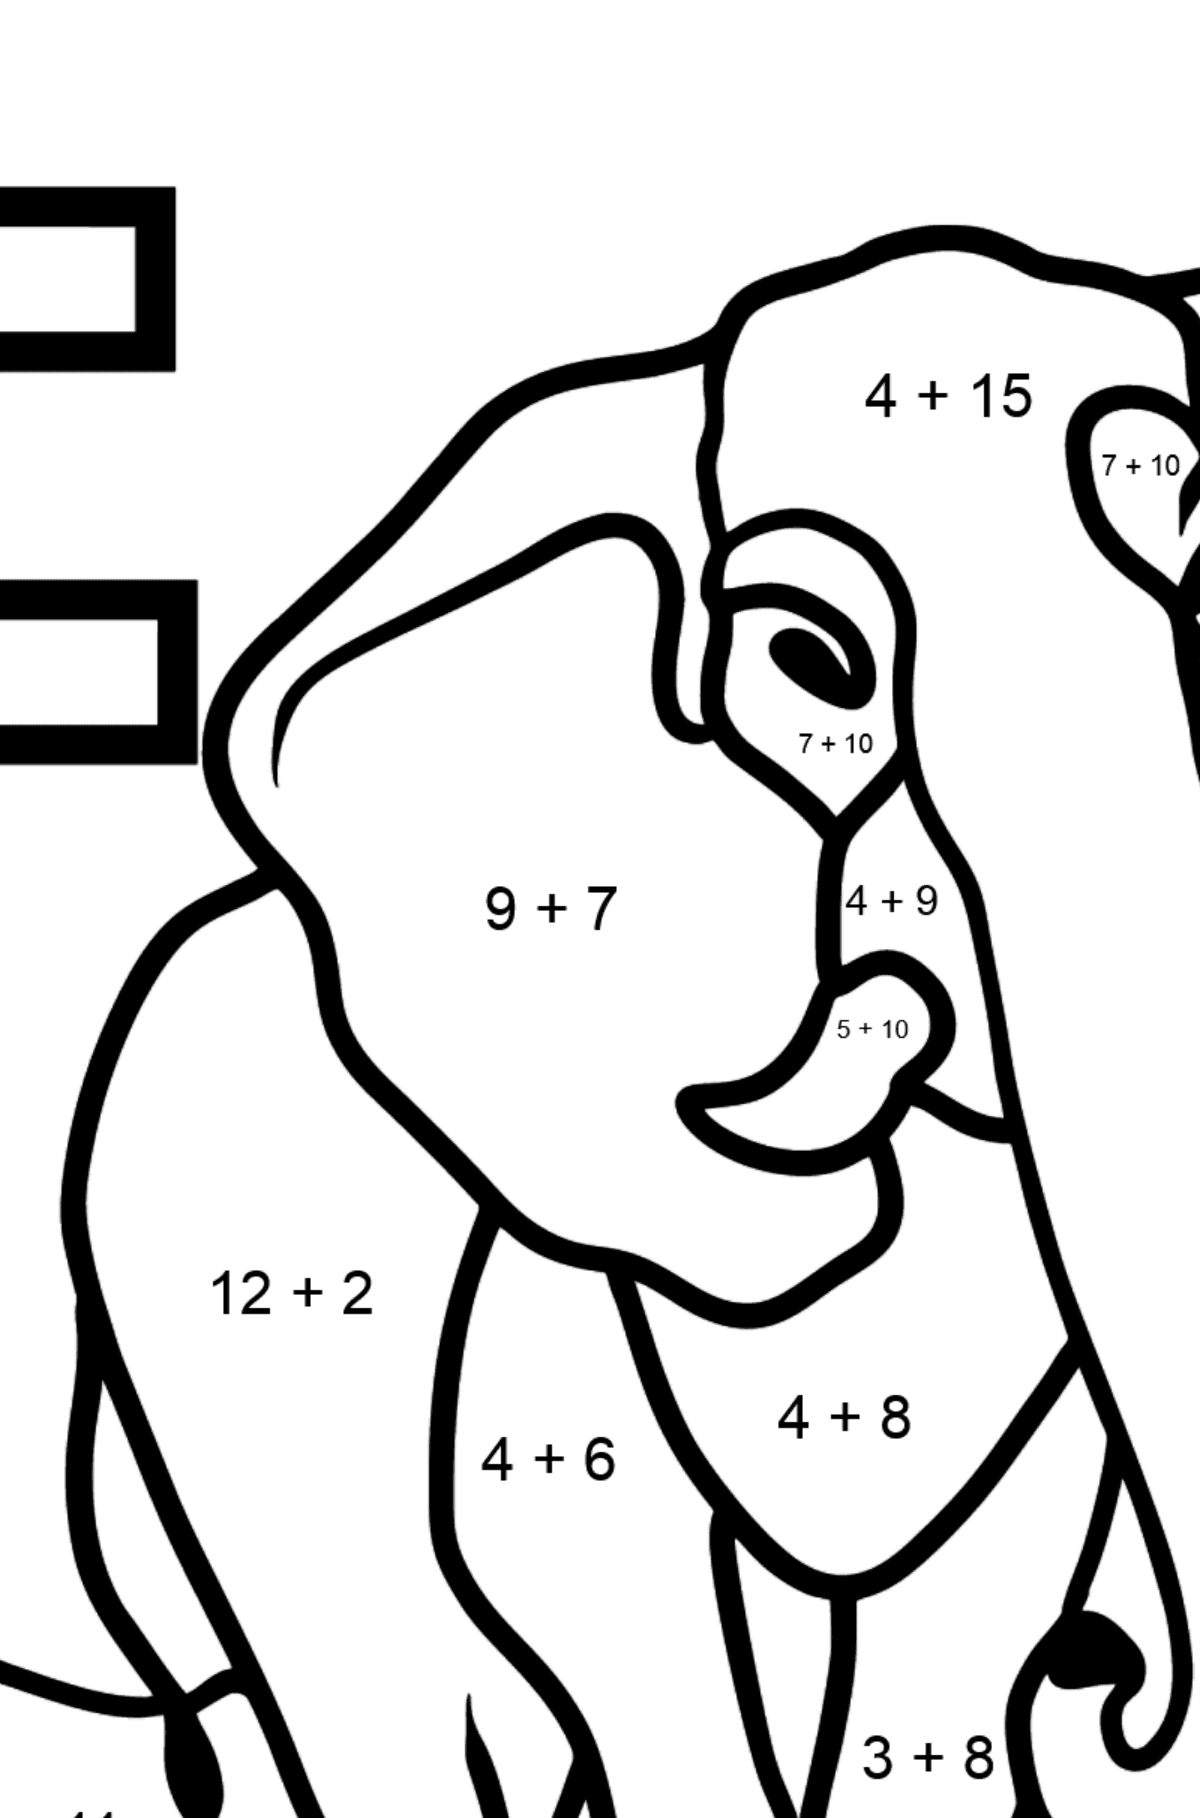 English Letter E coloring pages - ELEPHANT - Math Coloring - Addition for Kids